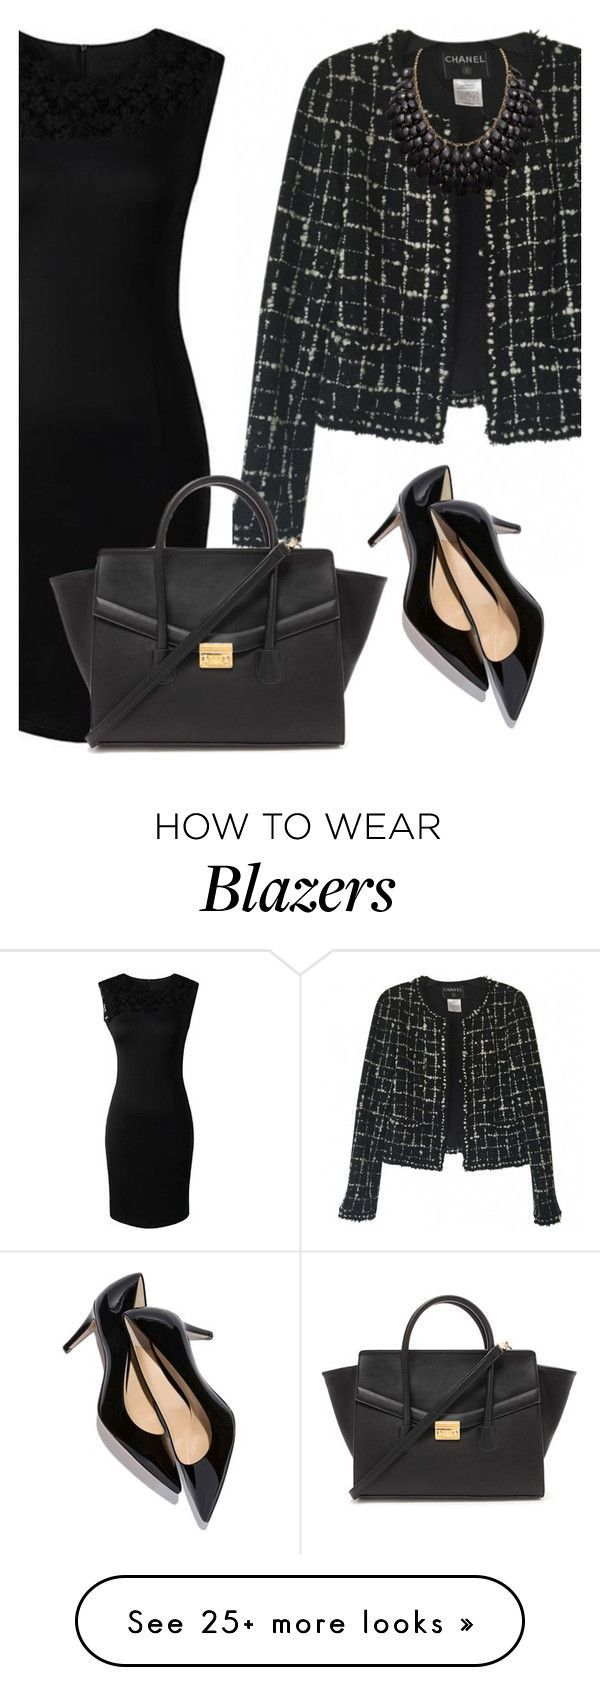 Quot Business Look Inspiration Quot By Monika1555 On Polyvore